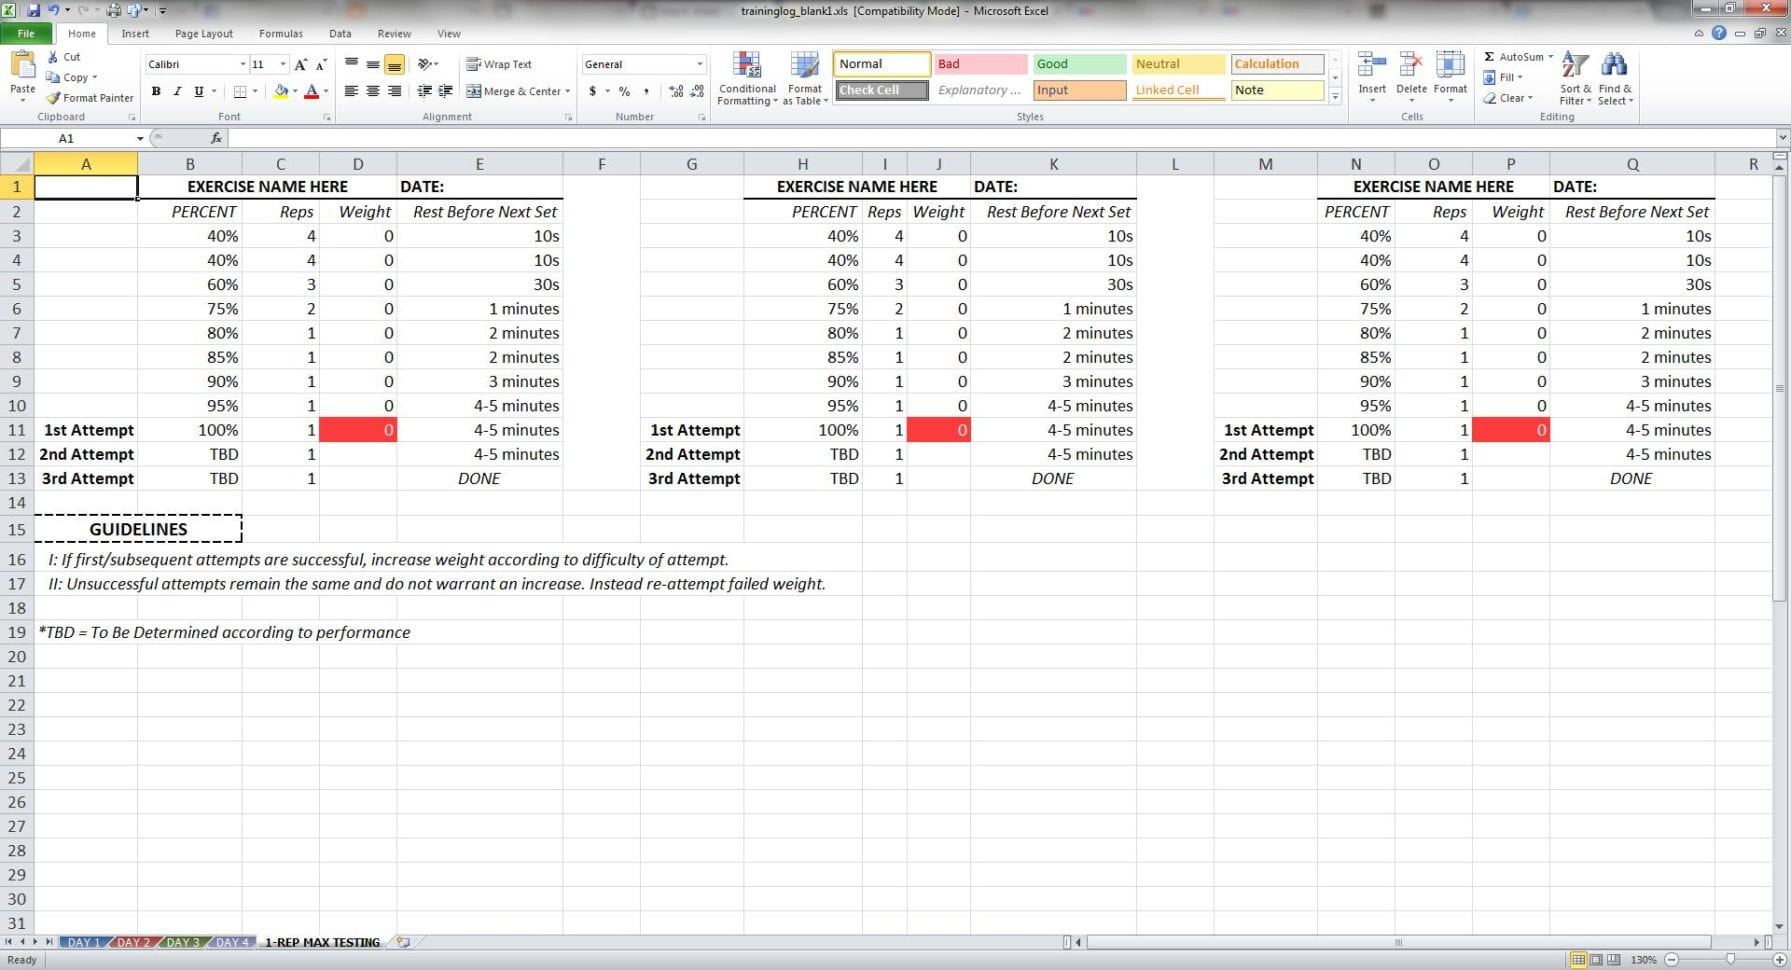 Excel Template Training Training Spreadsheet Example Employee Training Spreadsheet Template Excel Training Plan Templates In Excel Vacation And Sick Time Tracking Spreadsheet Excel Training Matrix Examples Spreadsheets Leave Tracker Excel Template  Free Annual Leave Spreadsheet Excel Template Training Spreadsheet Template Spreadsheet Templates for Busines